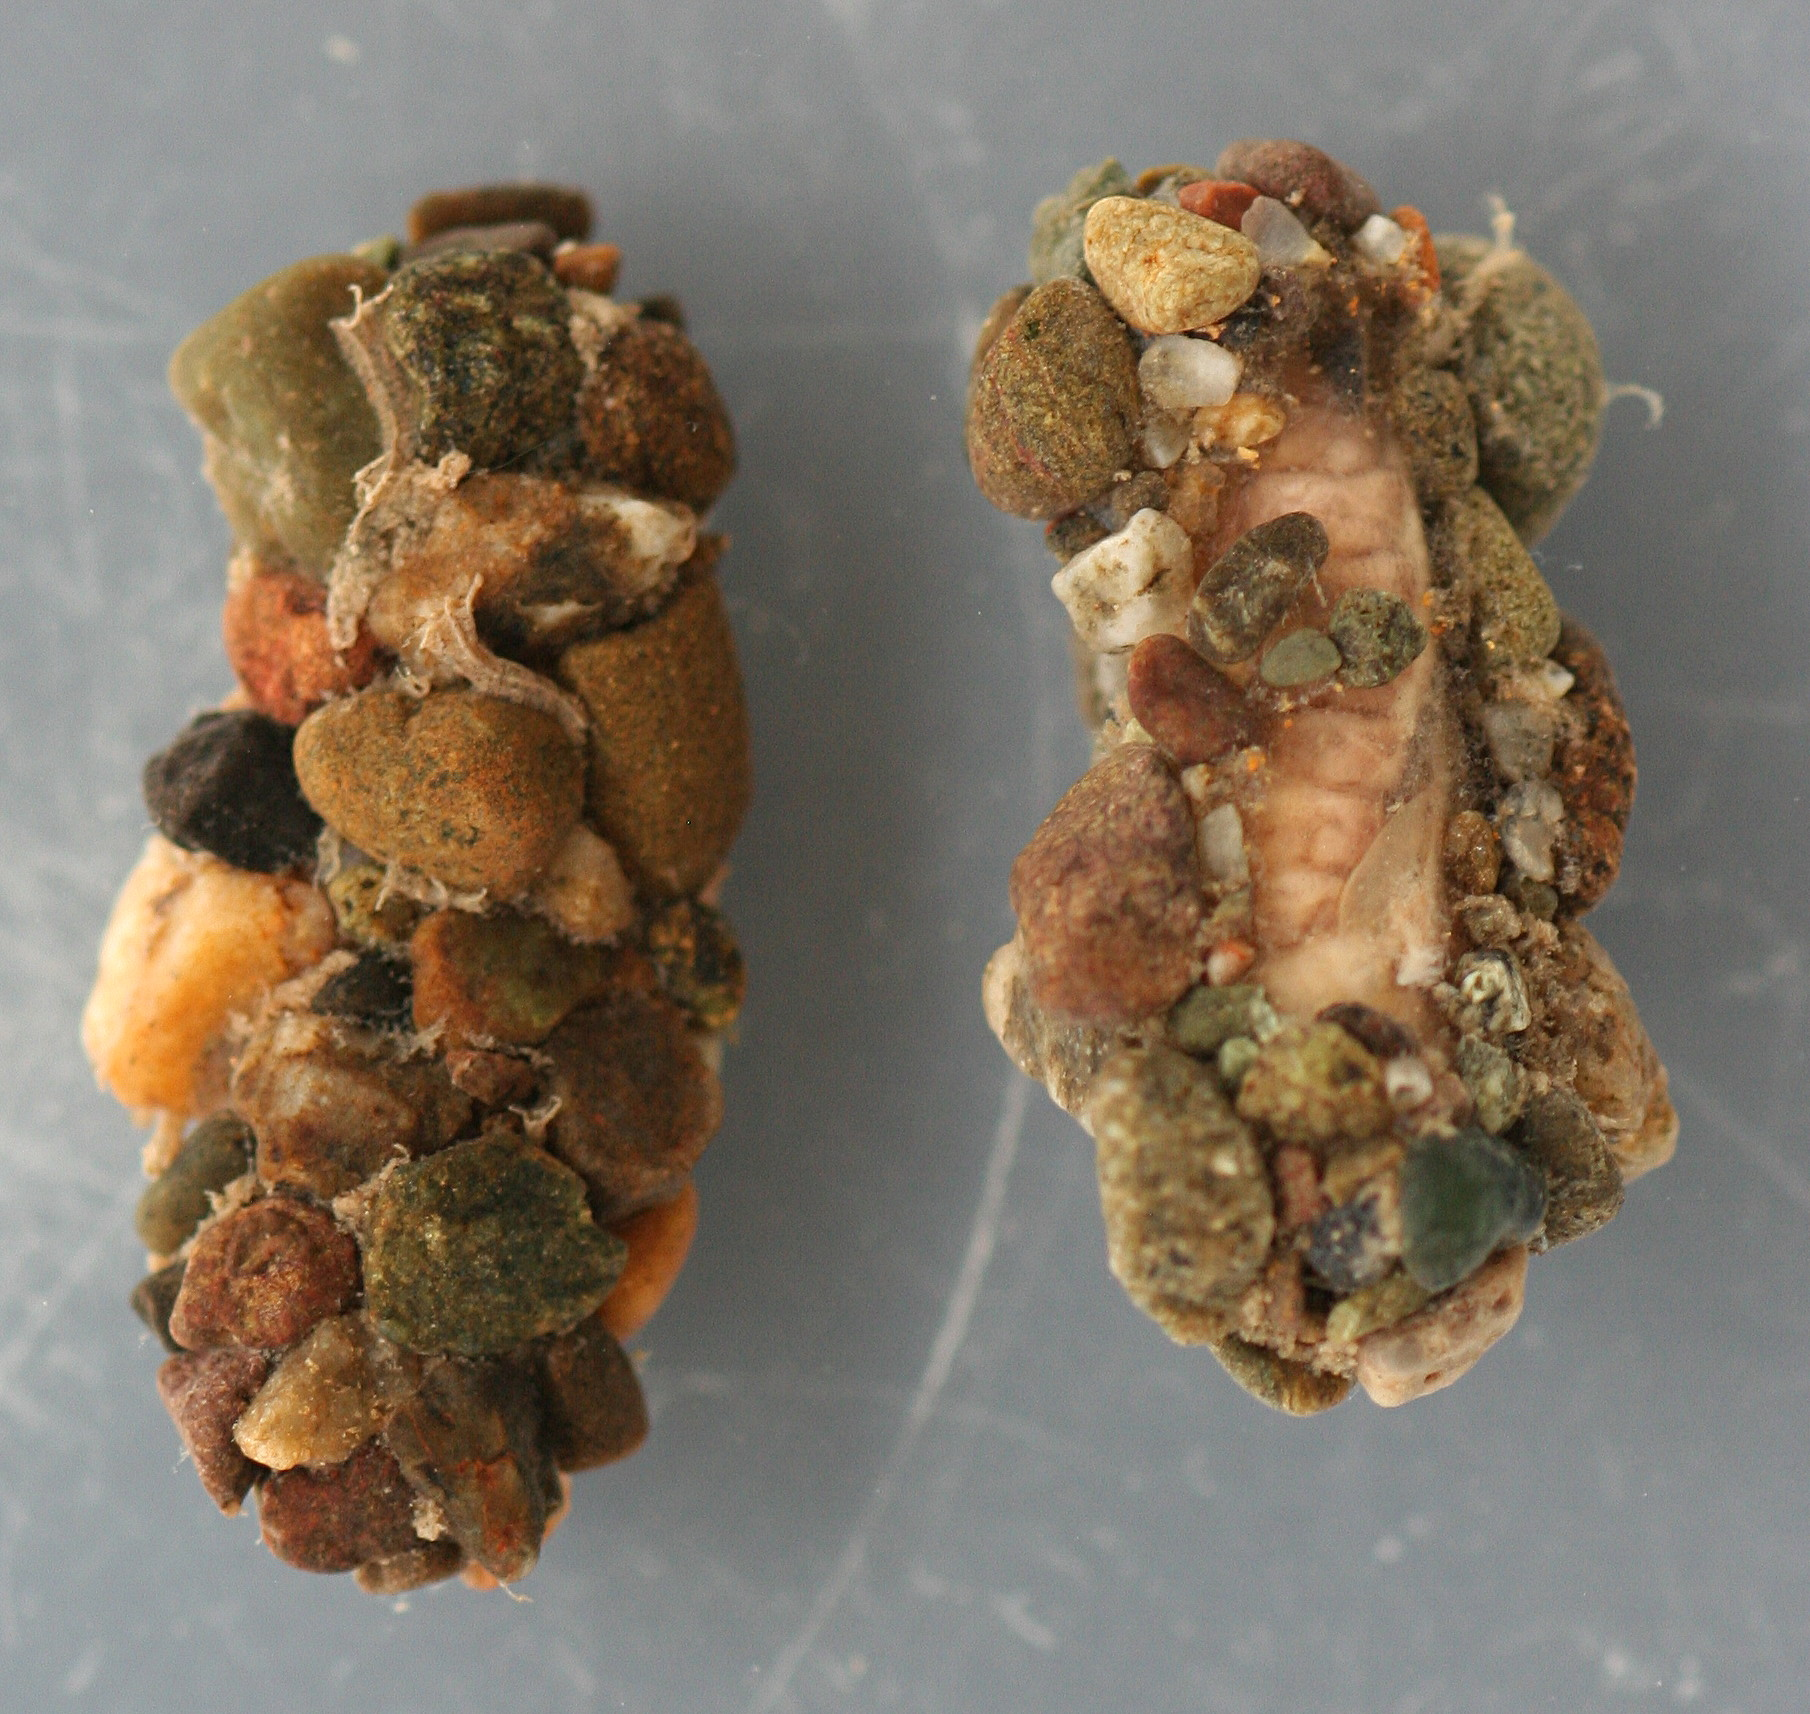 Photo taken April 3, 2013. Cases with pupae. Cases 16 mm. Pupae 13 mm. In alcohol.